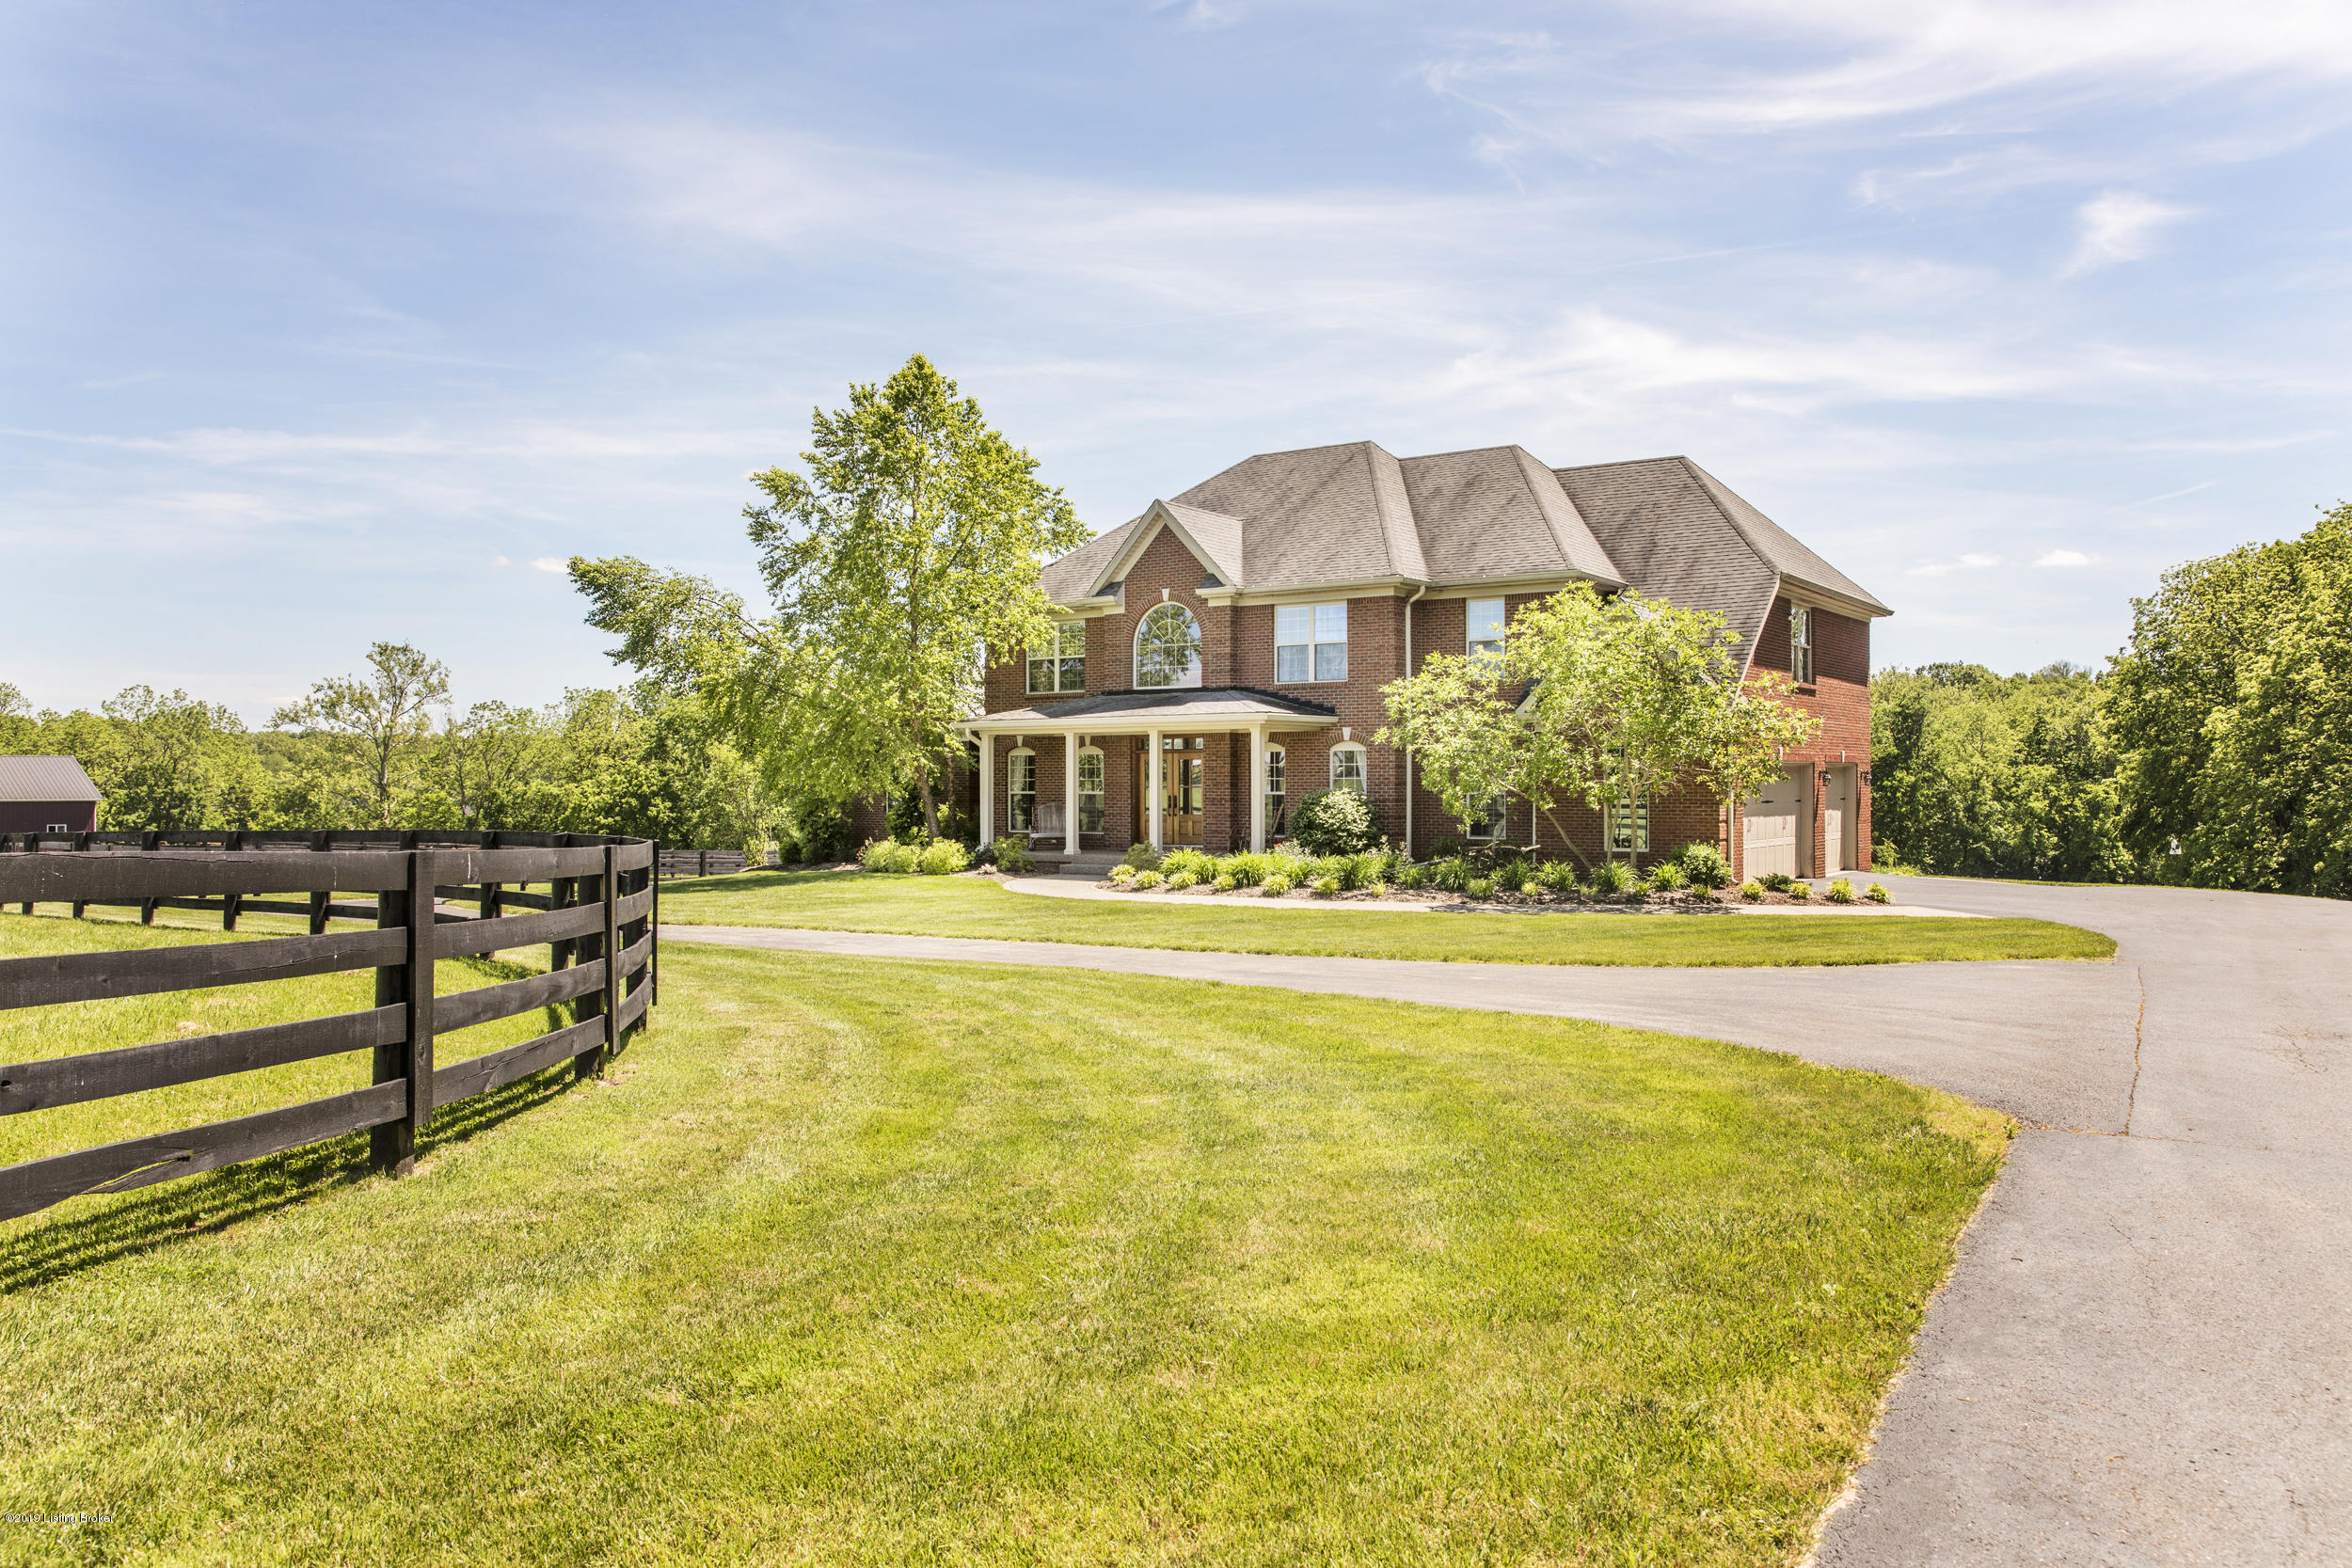 1060 Bluegrass Pkwy, La Grange, Kentucky 40031, 6 Bedrooms Bedrooms, 17 Rooms Rooms,6 BathroomsBathrooms,Residential,For Sale,Bluegrass,1524405